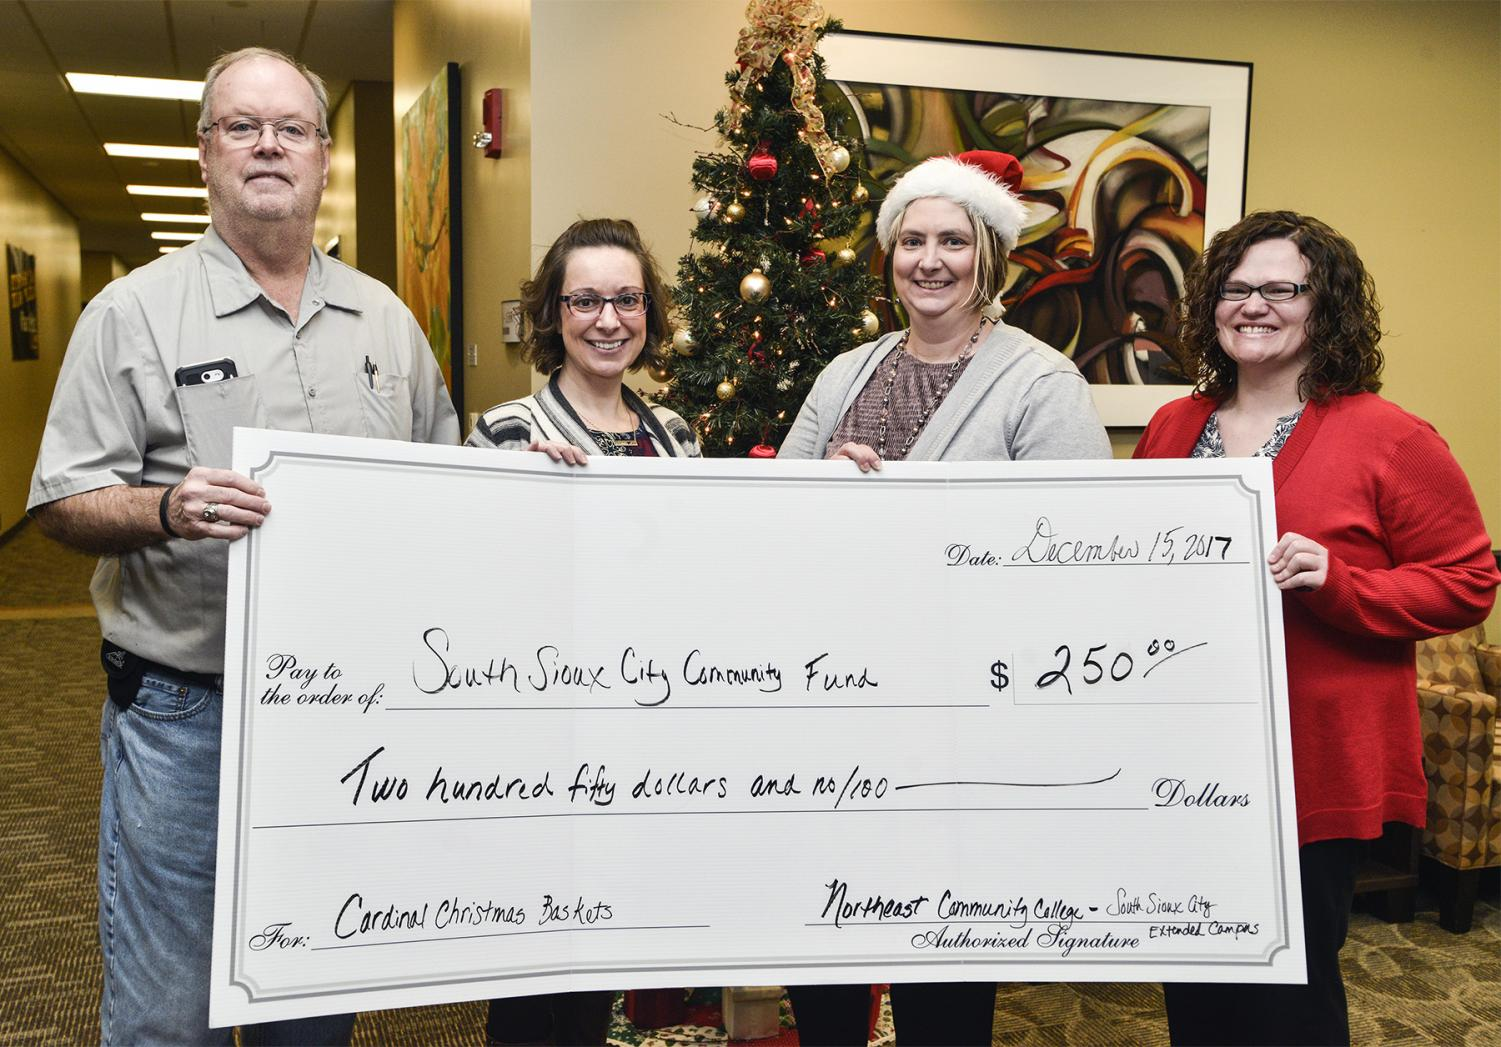 Bill Garvey Sr., co-chair of the Cardinal Christmas Baskets program, accepts a check for $250 from Northeast Community College representatives Kristina Coombs, service center specialist (left), Dr. Cyndi Hanson, executive director, and Cara Watchorn, student support specialist. The funds were raised by allowing Northeast employees to pay to wear jeans on certain Fridays throughout the past year.